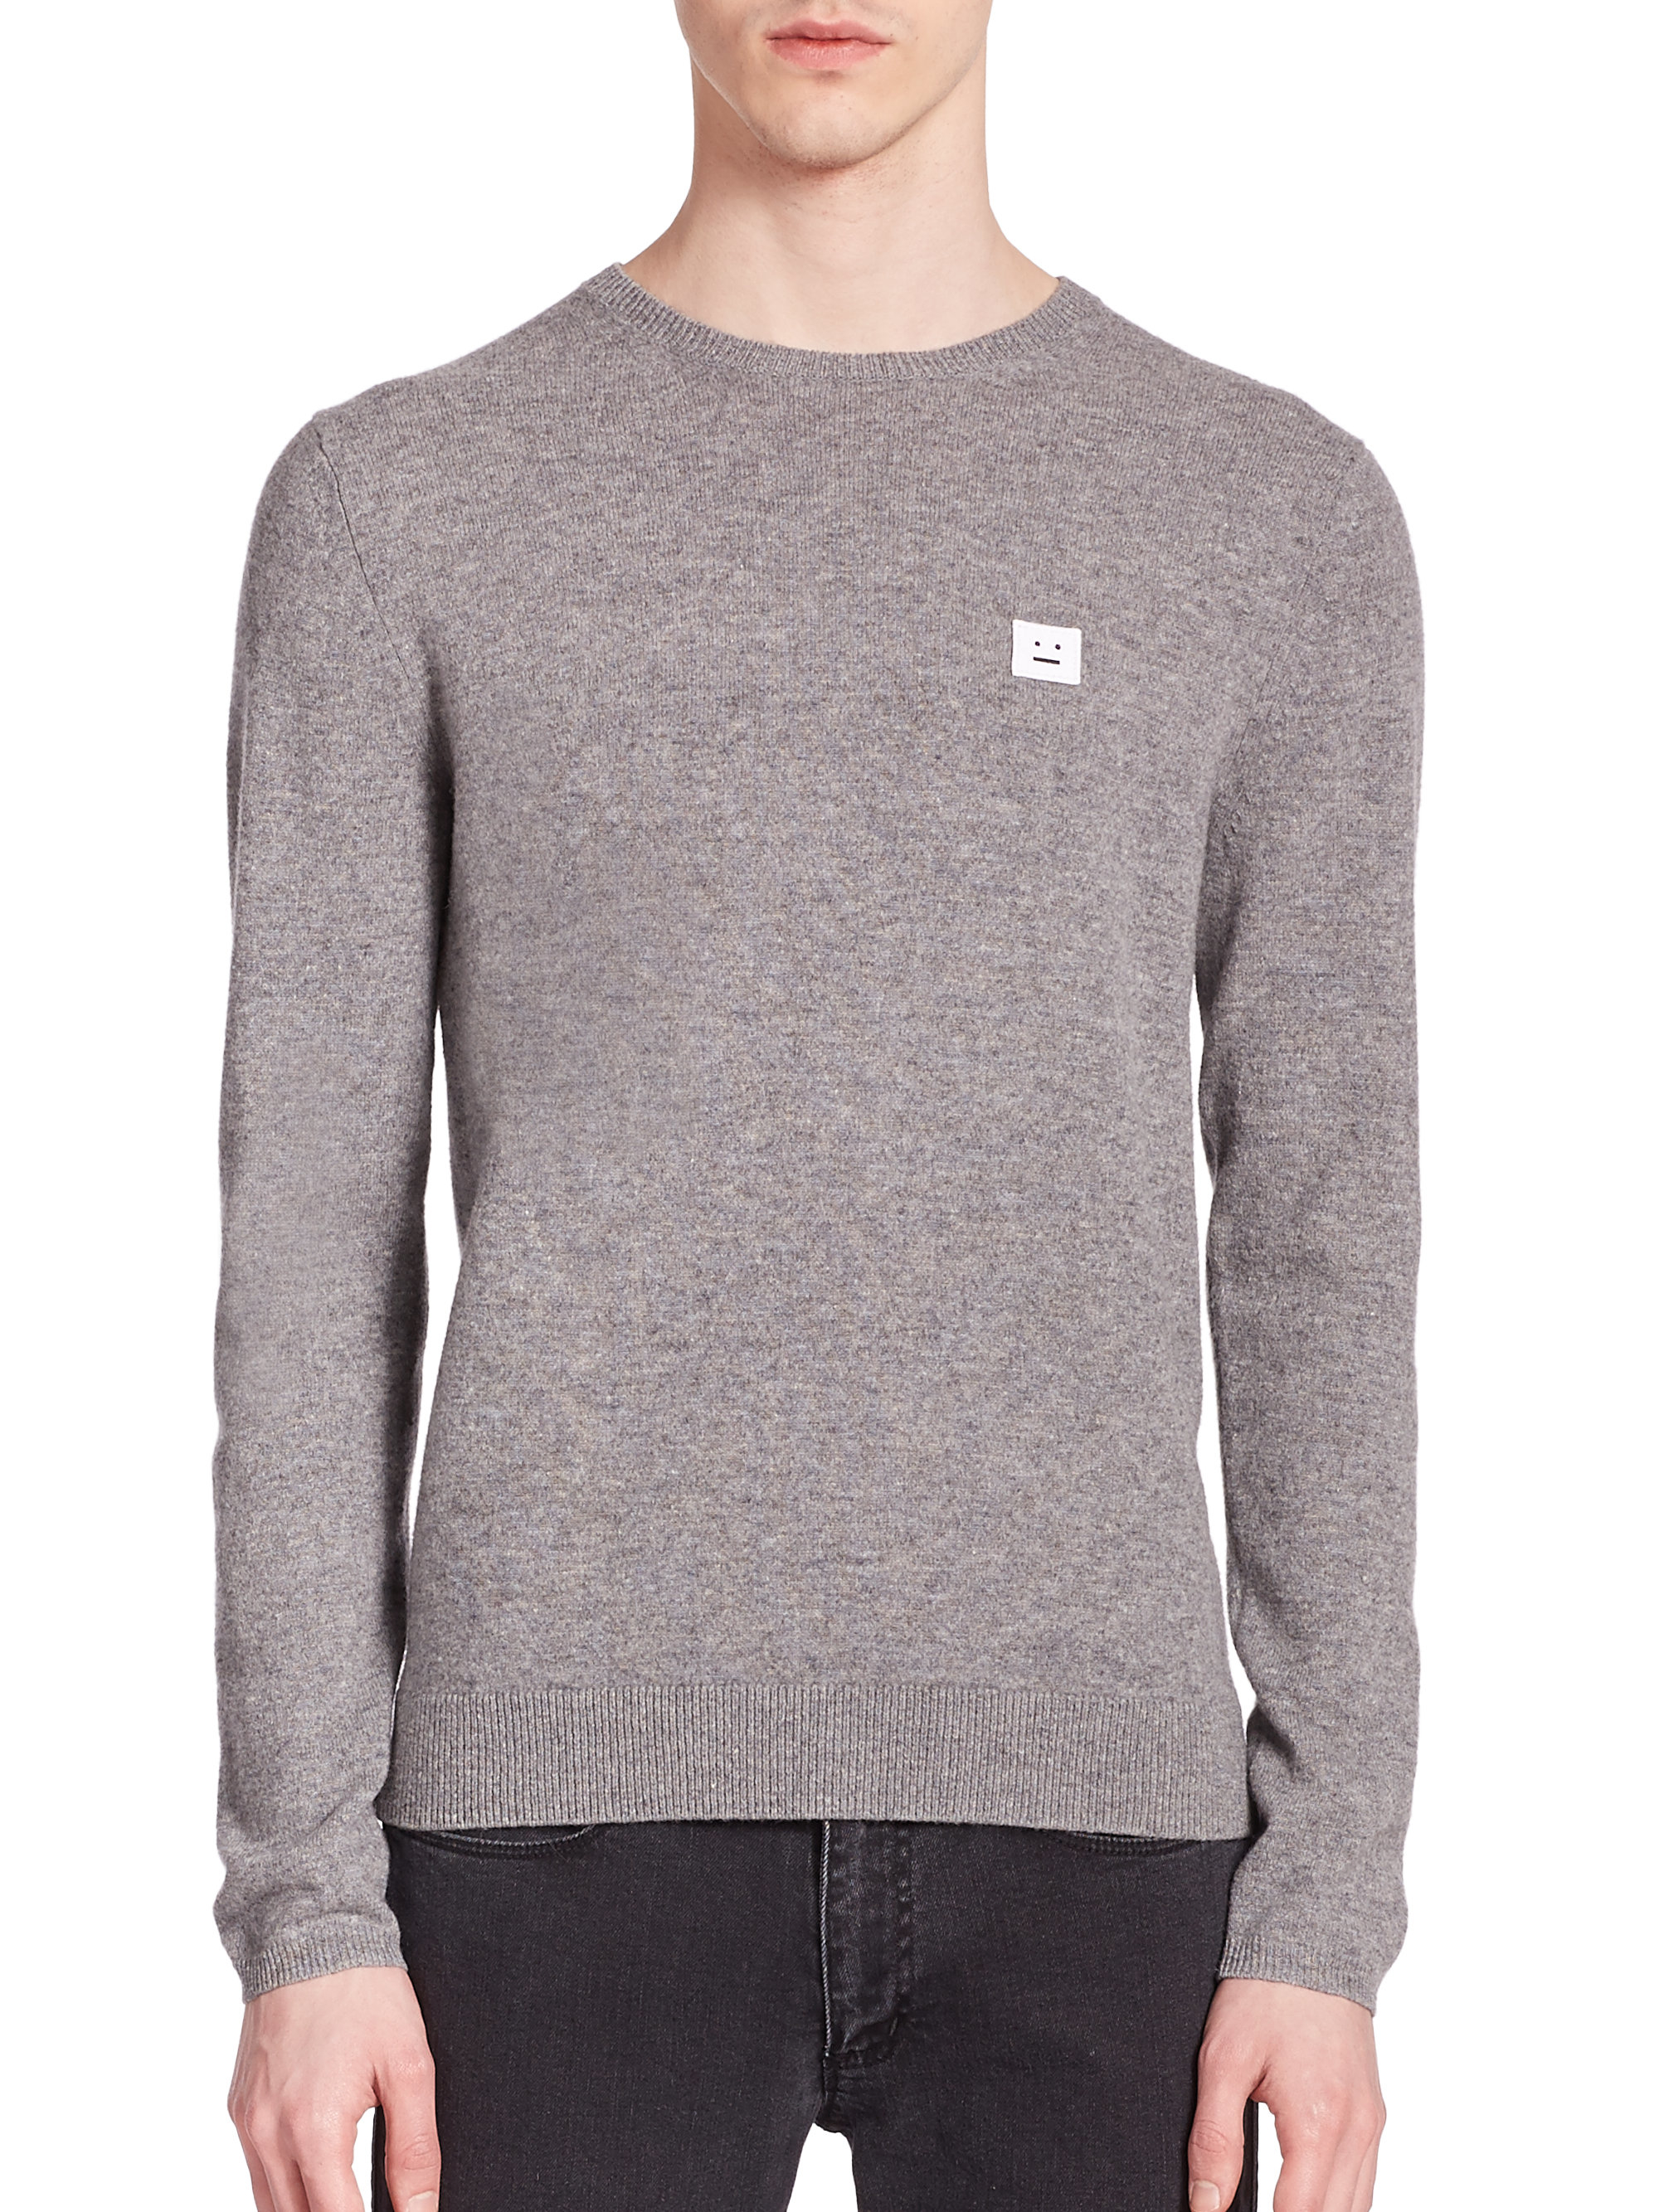 acne studios dasher face patch sweater in gray for men lyst. Black Bedroom Furniture Sets. Home Design Ideas